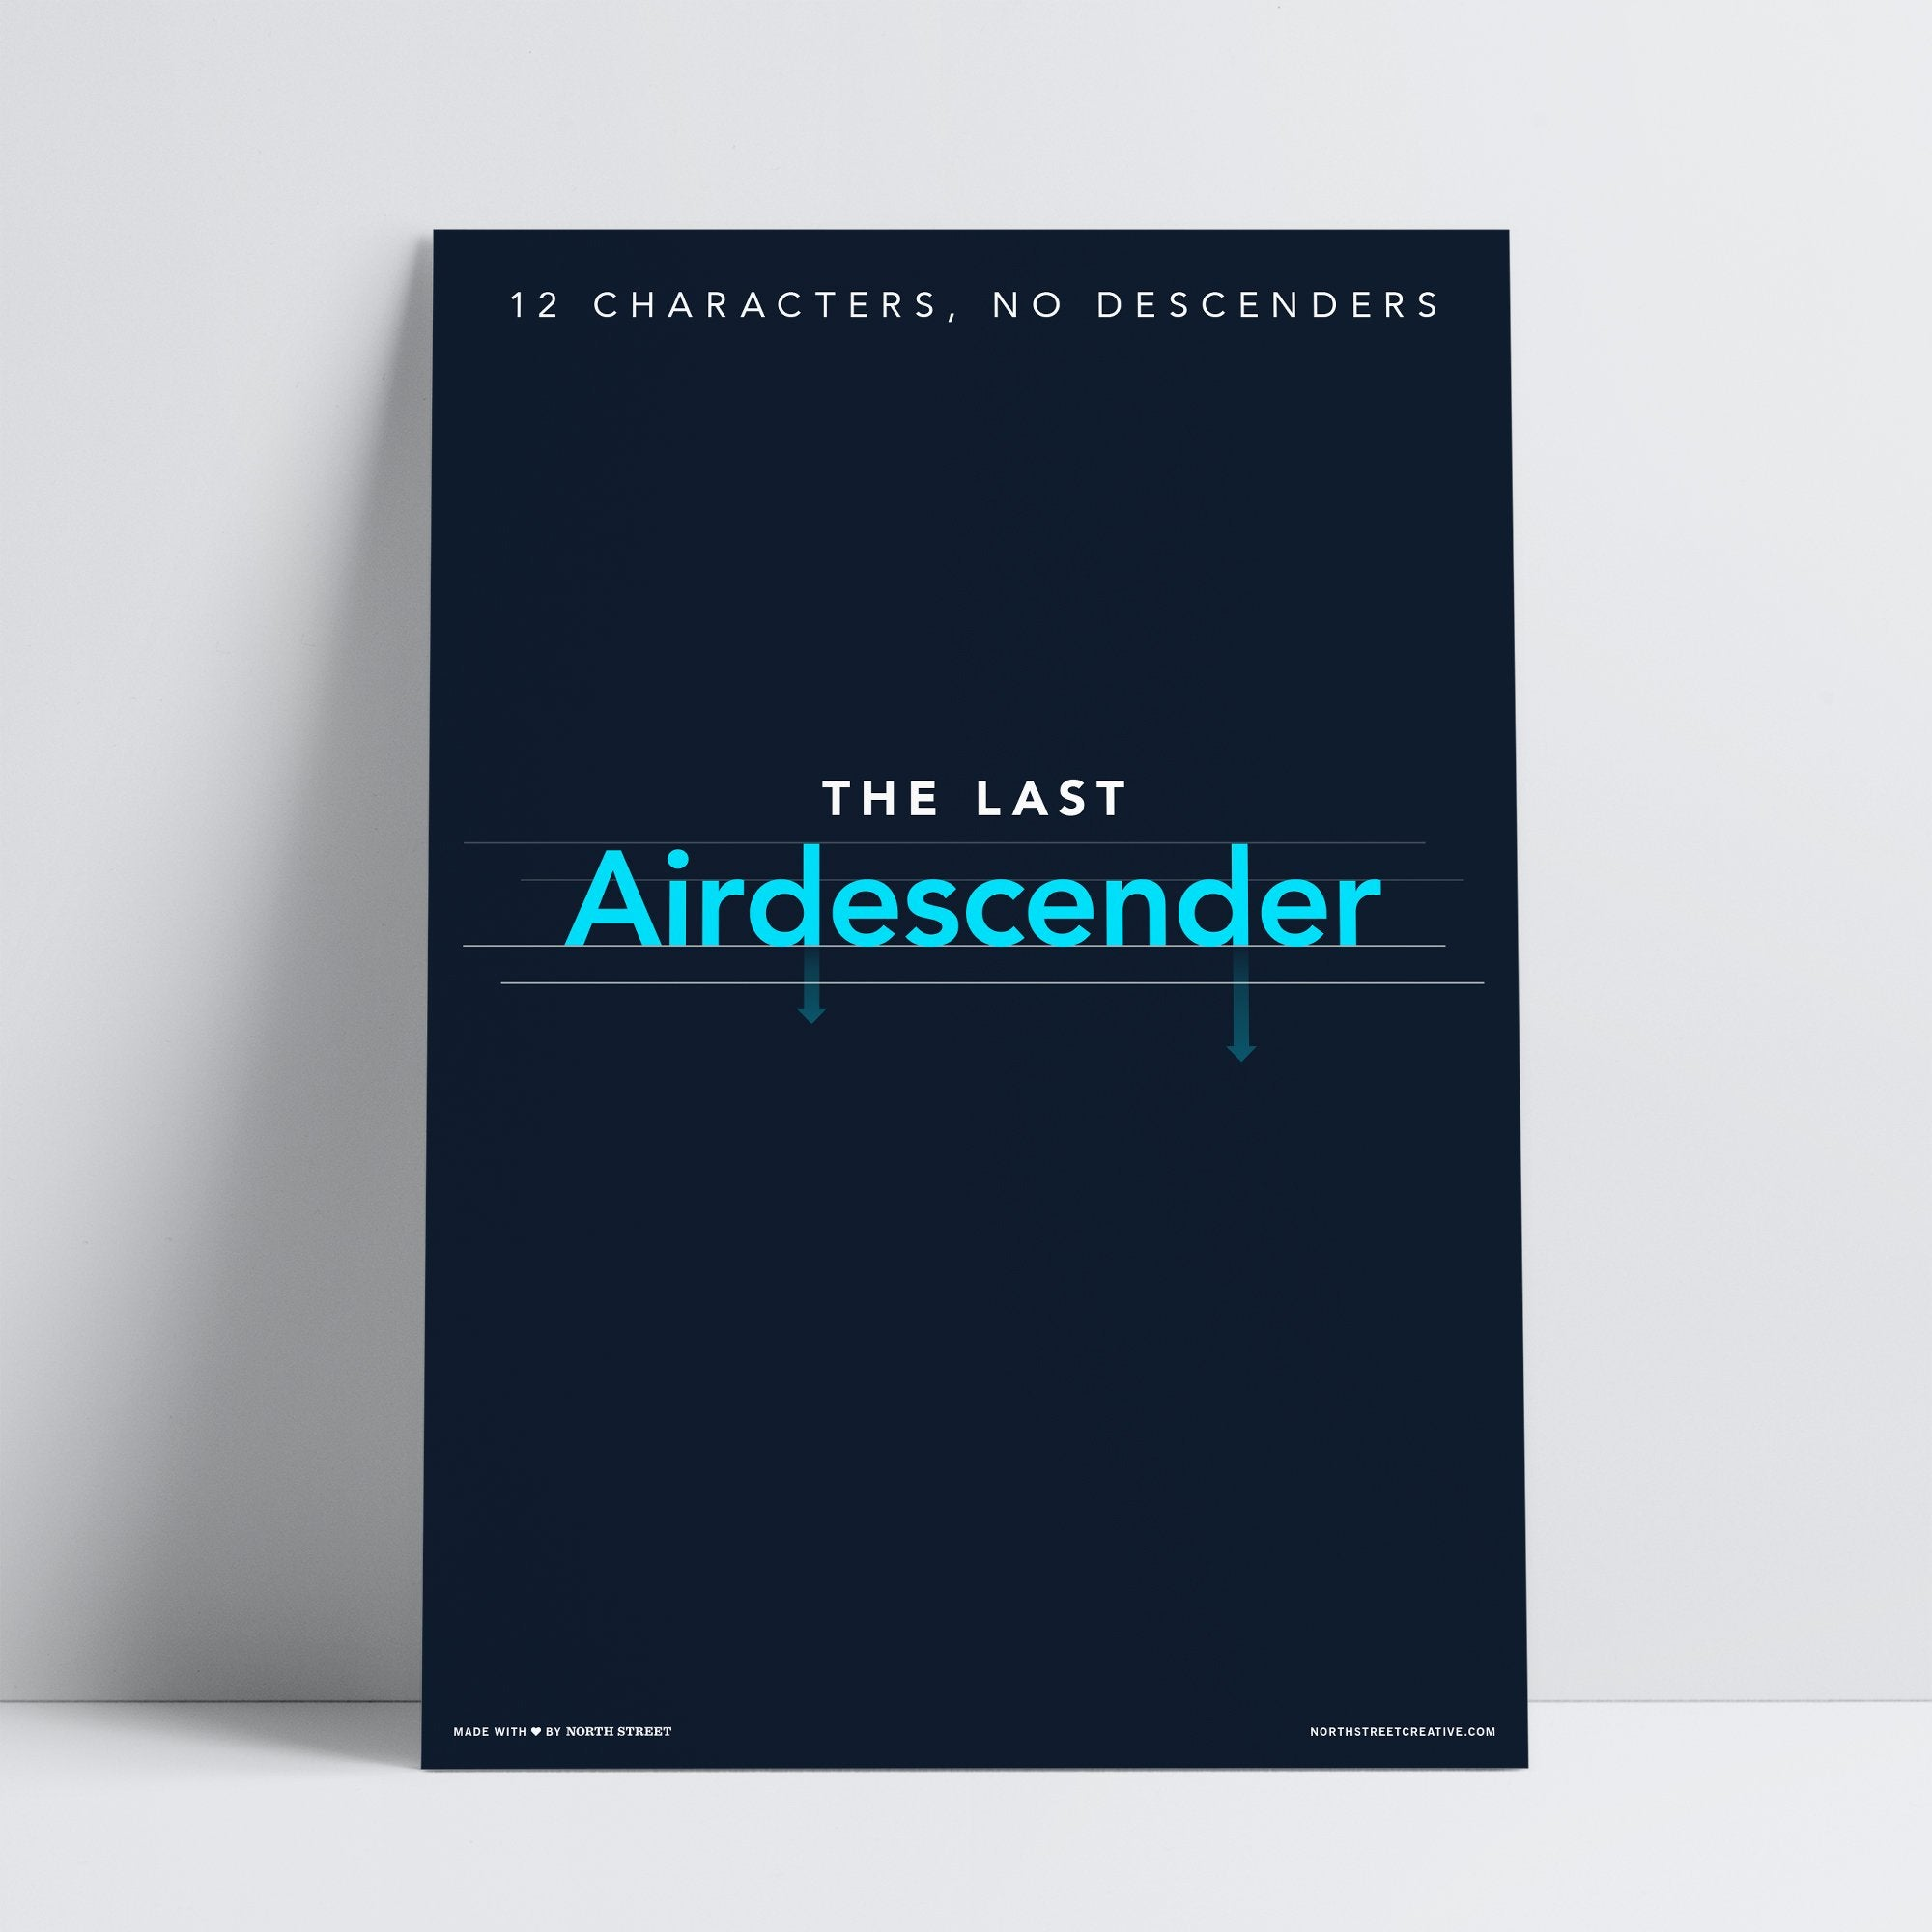 The Last Airdescender